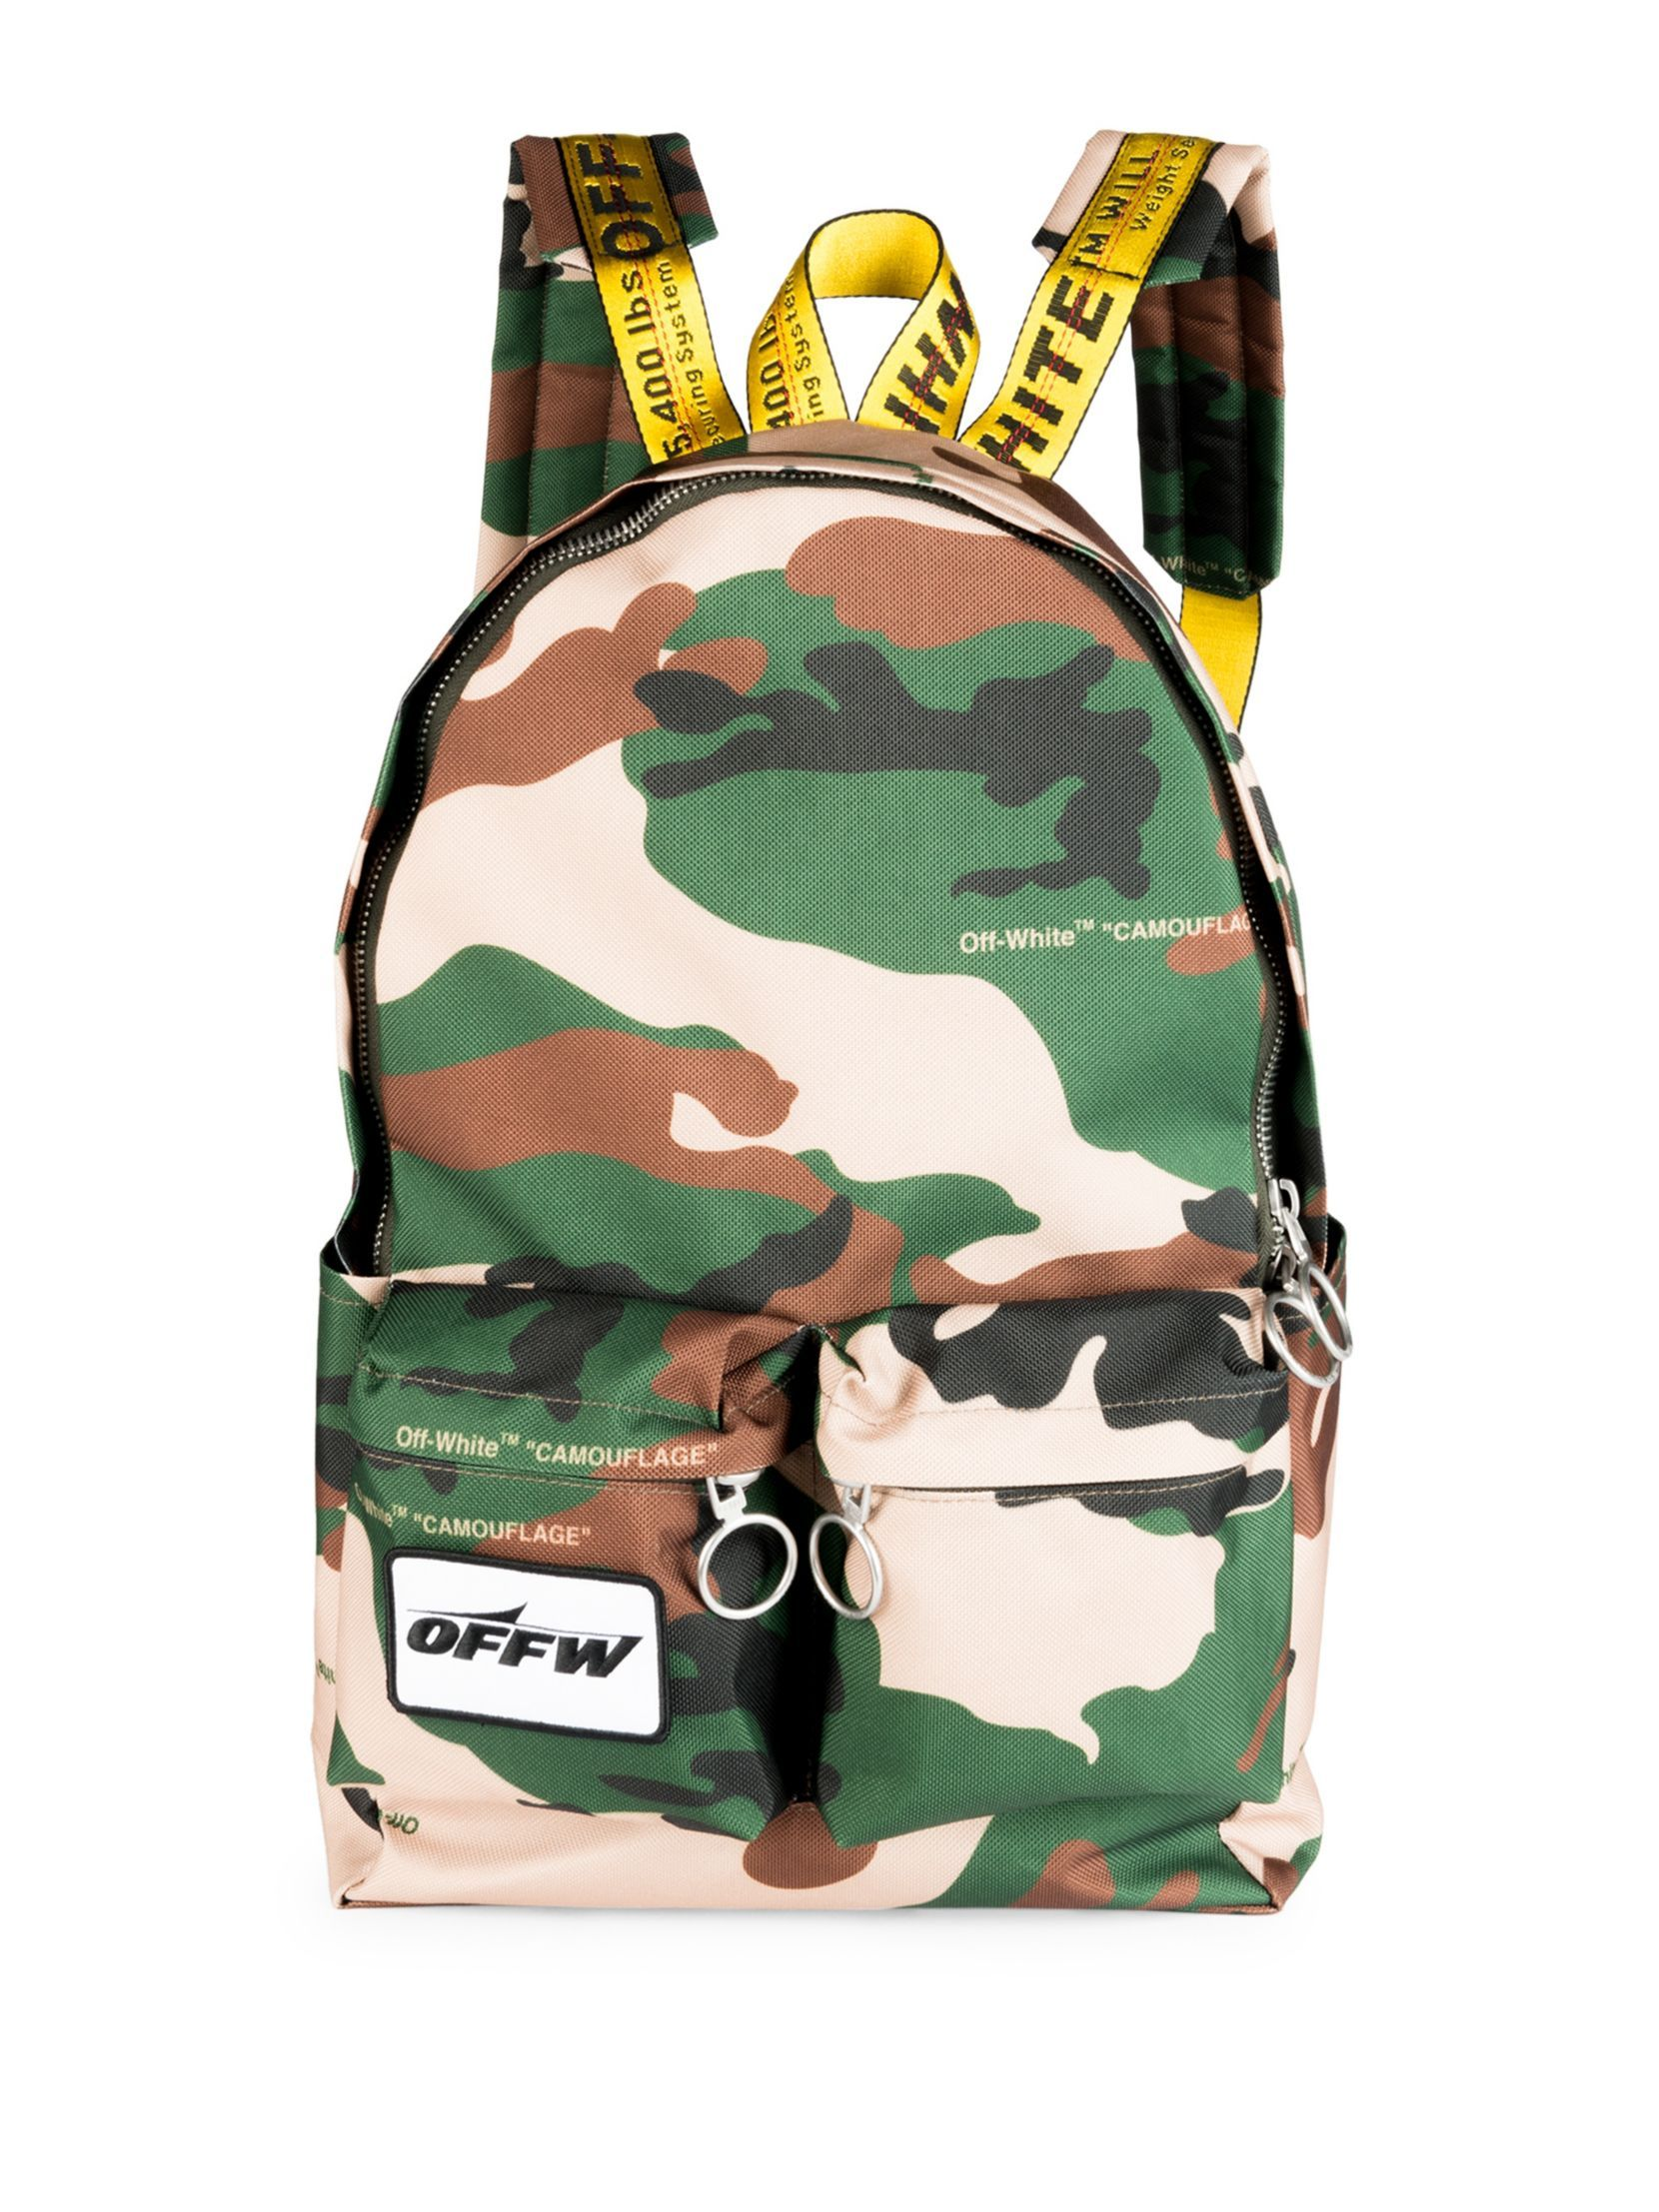 51a8088341177 Off-White Camouflage Textured Backpack | Bags | Backpacks ...